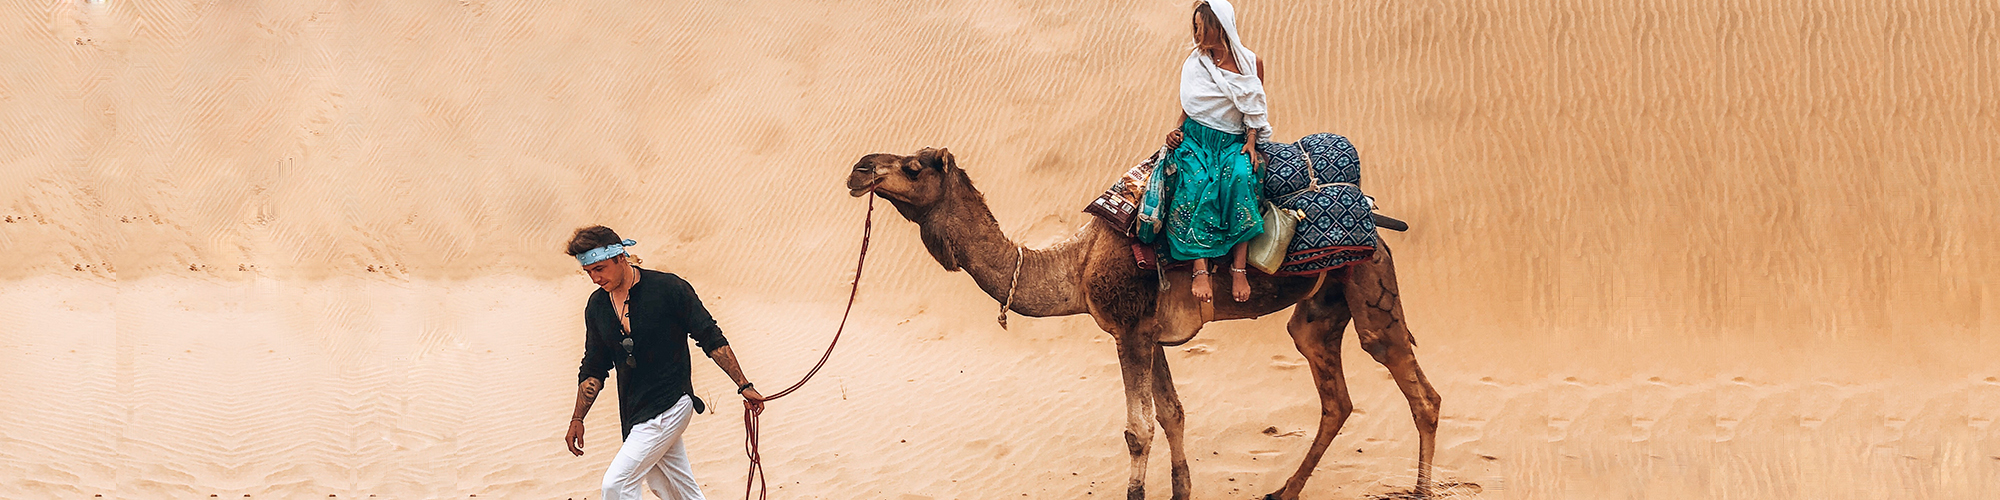 Hurghada Safari Trips - Tours From Hurghada